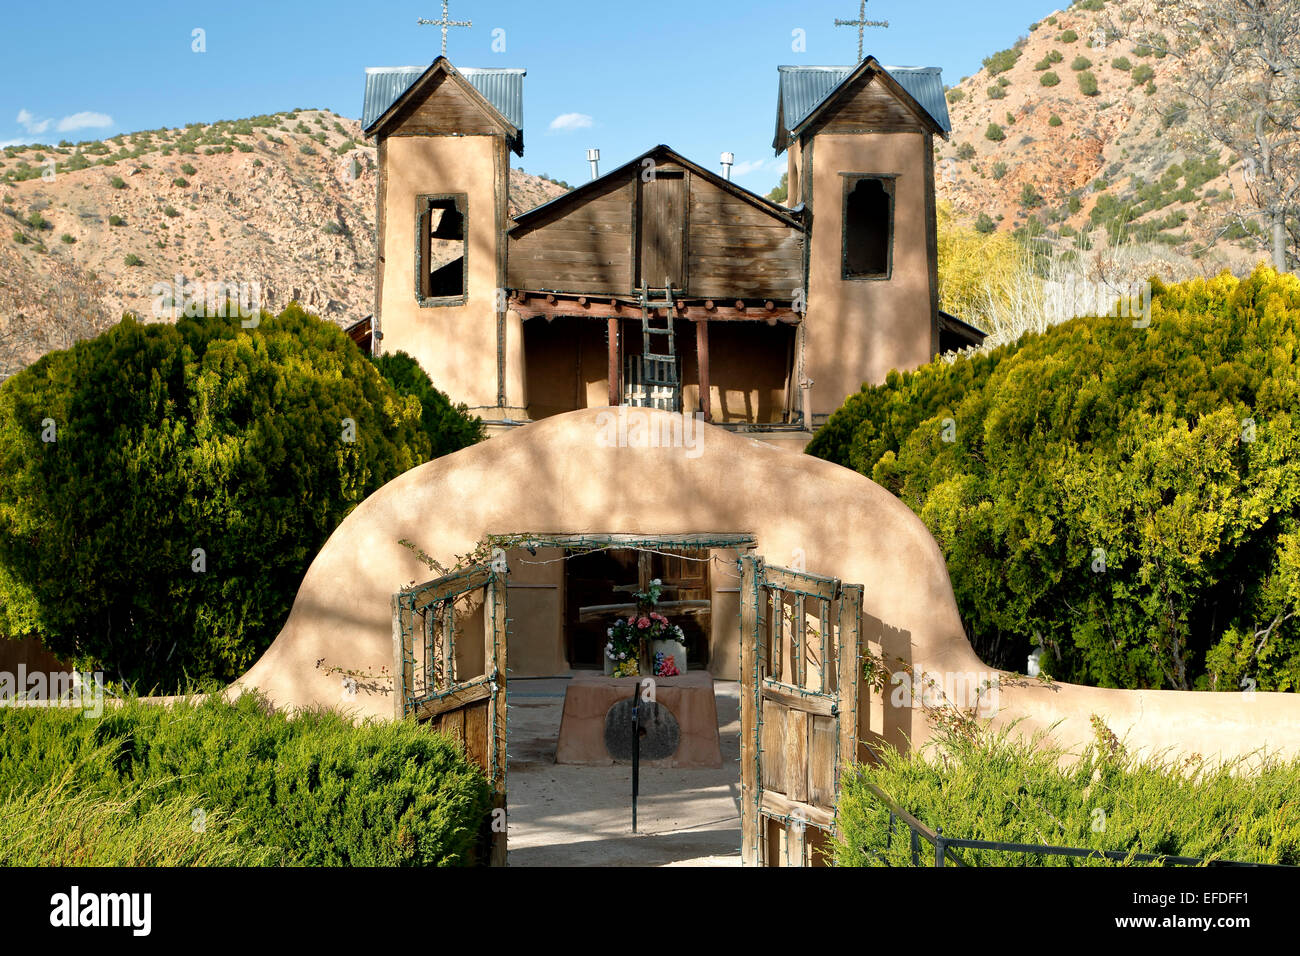 Adobe gate and Santuario de Chimayo, Chimayo, New Mexico USA - Stock Image